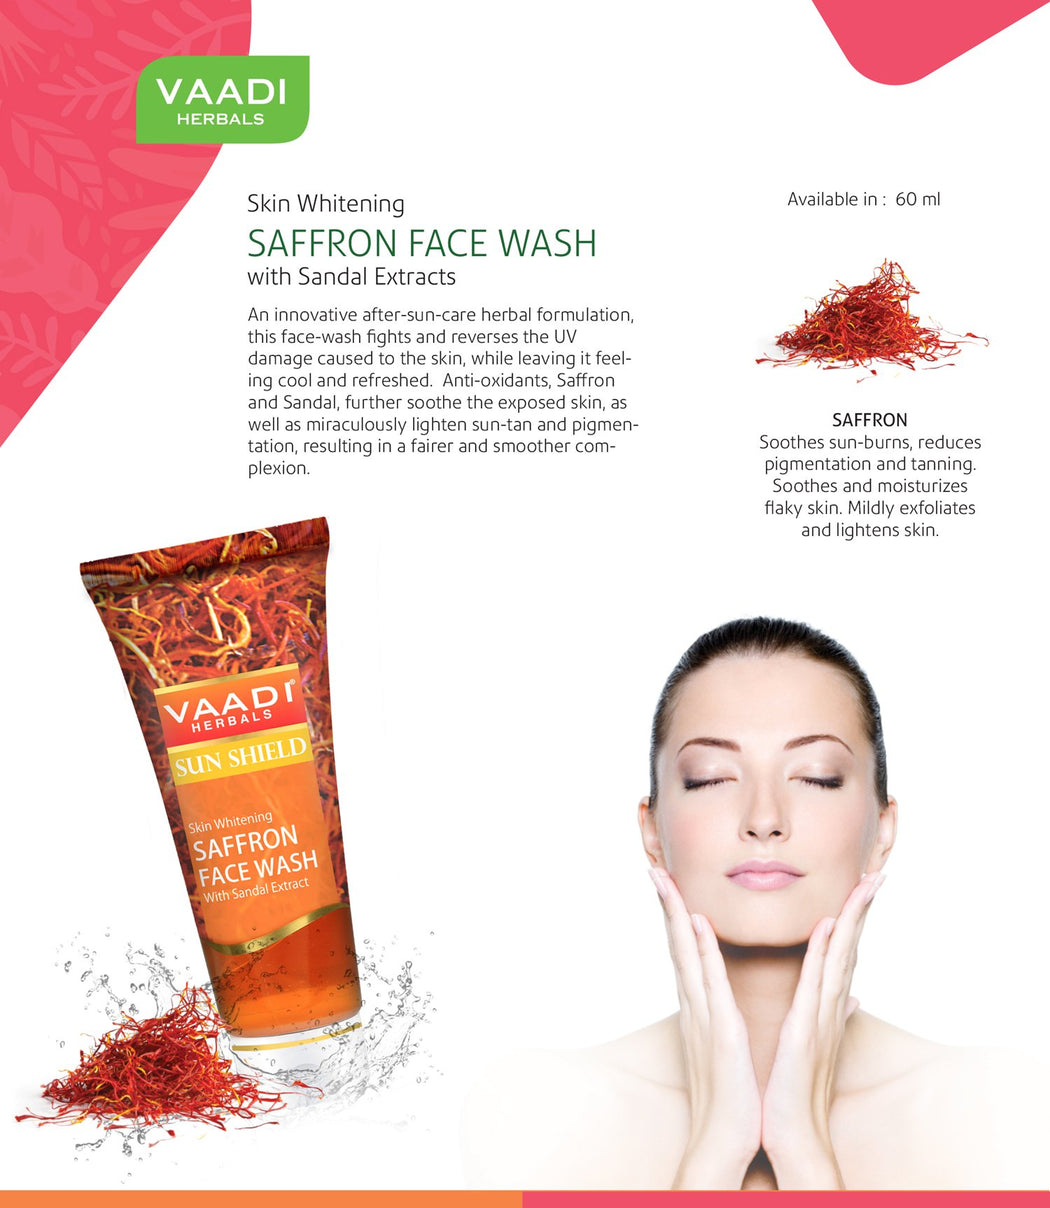 Skin Brightening Organic Saffron Face Wash with Sandalwood (60 ml/2.1 fl oz)